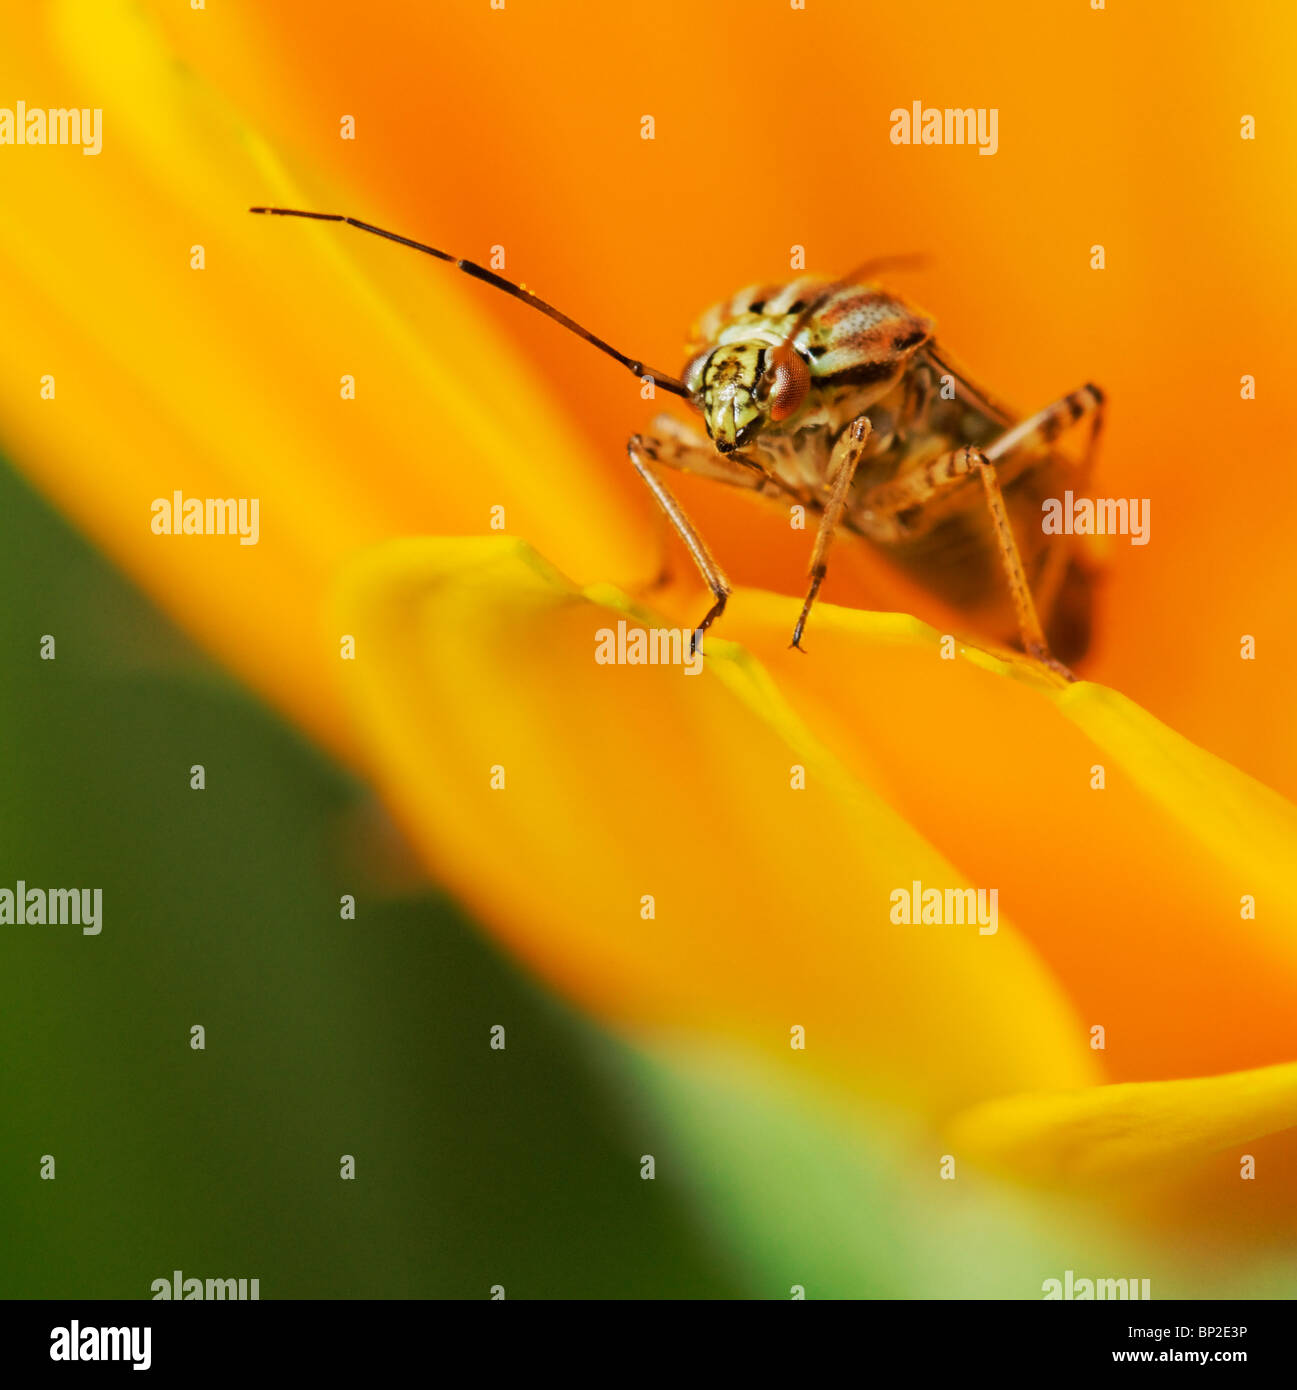 A Plant Bug on a Marigold flower.Either a Capsid or Mirid bug. - Stock Image